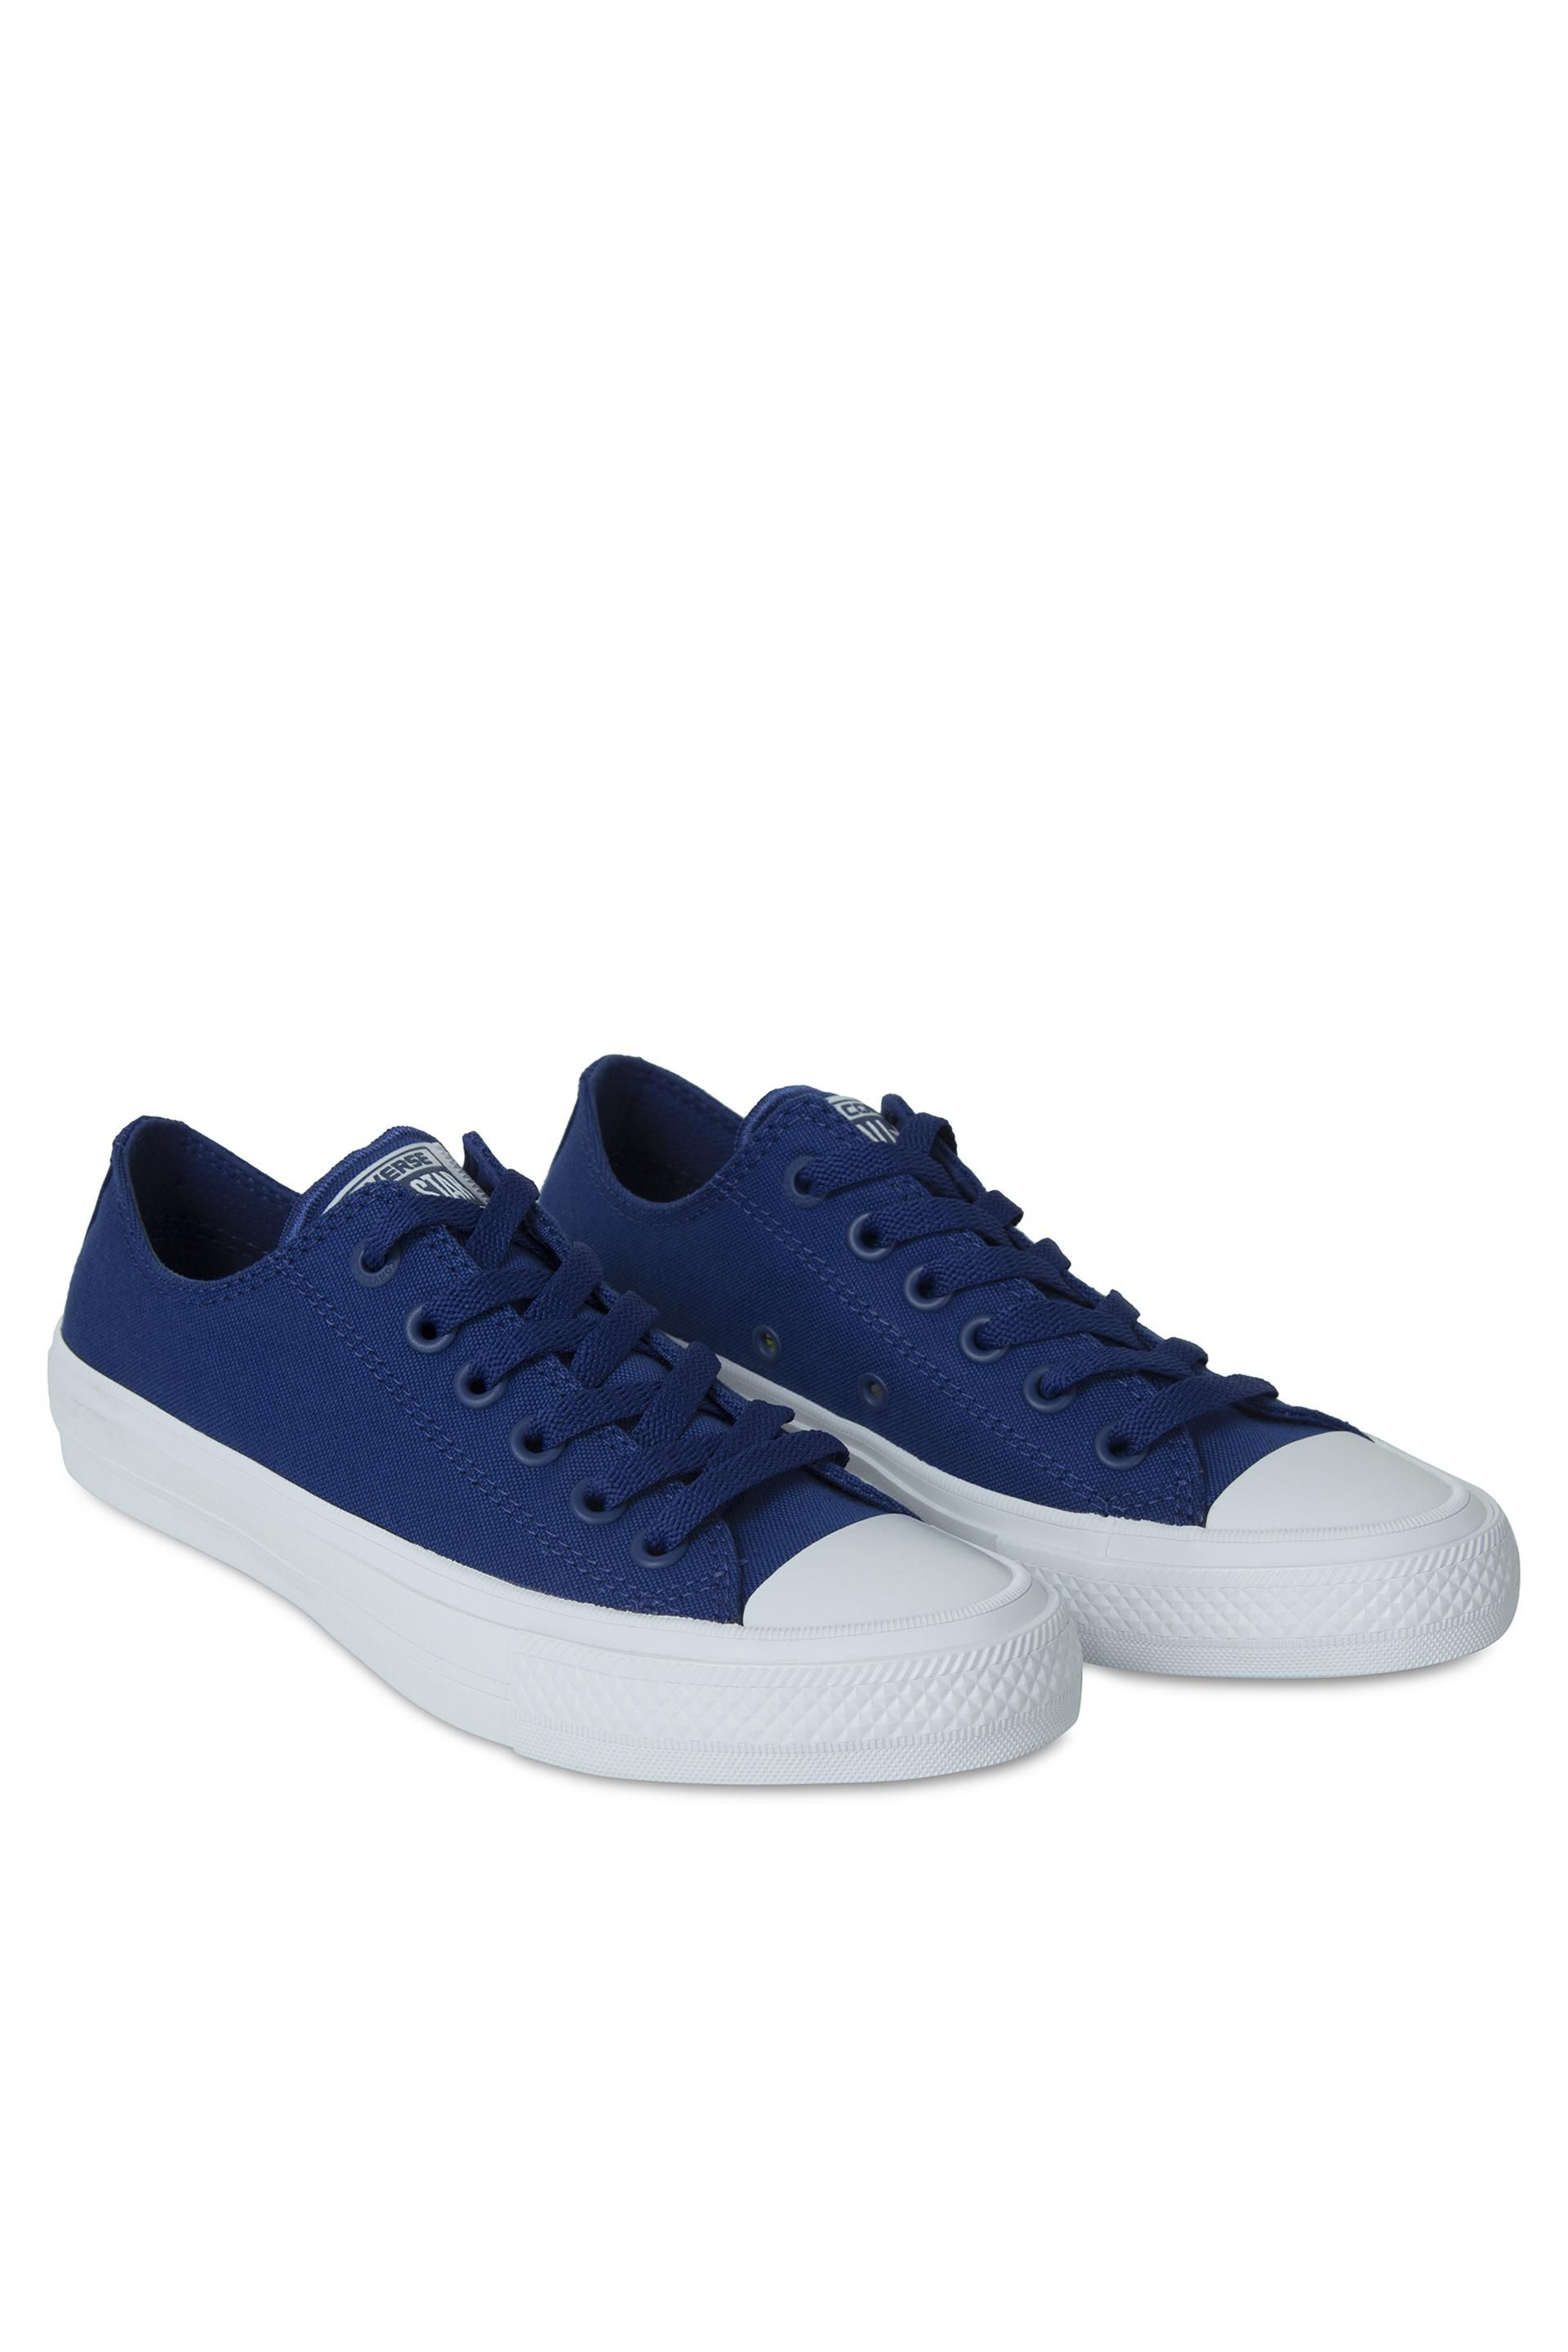 Star By Chuck All Will Taylor Converse You In Blue Sodalite Ii rwIIE5vxq 01e41fdbf42